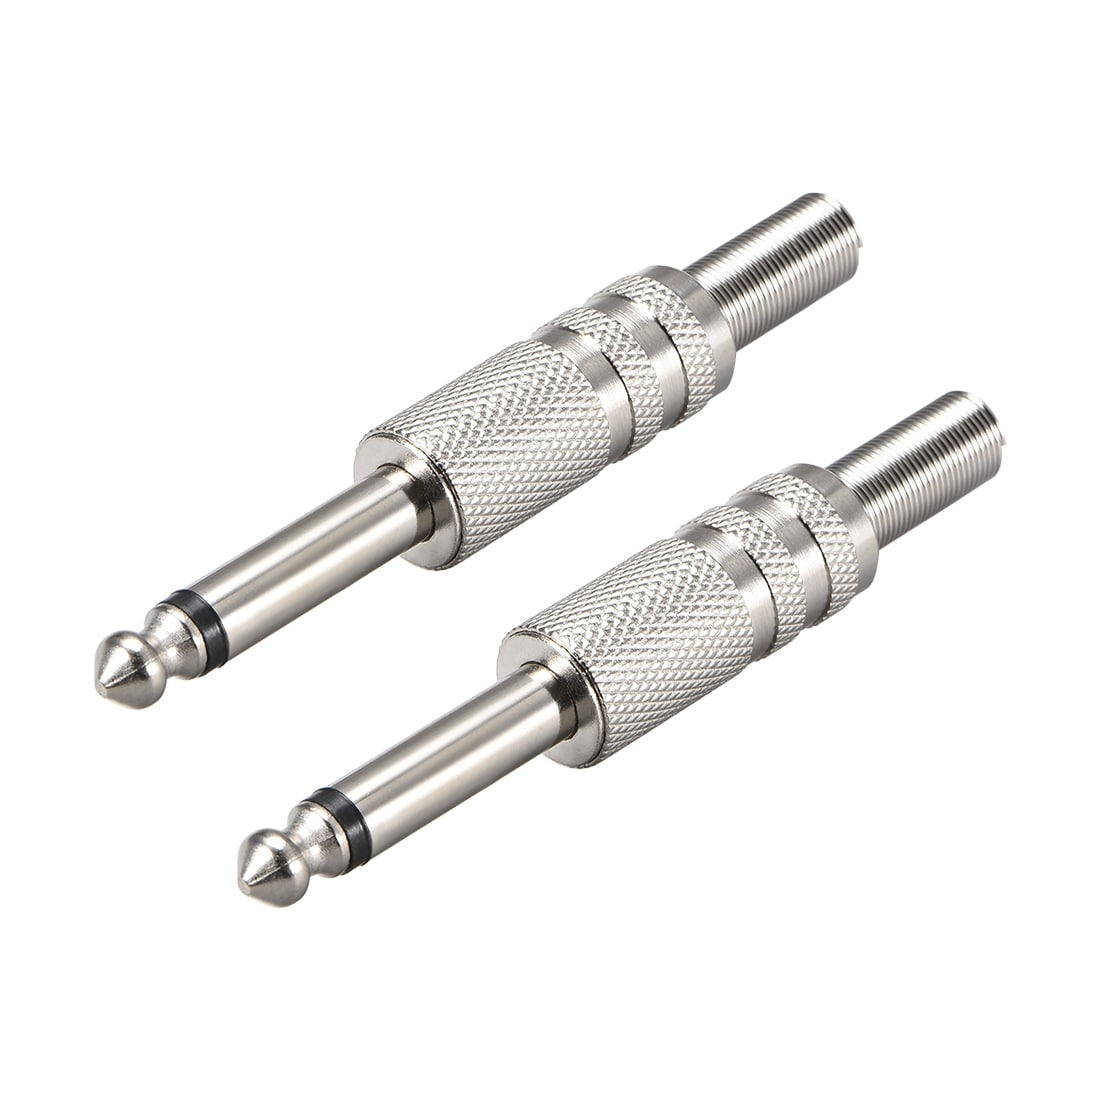 hight resolution of shop 6 35mm mono male jack solder connector audio video cable adapter zinc alloy 2pcs on sale free shipping on orders over 45 overstock 27580155